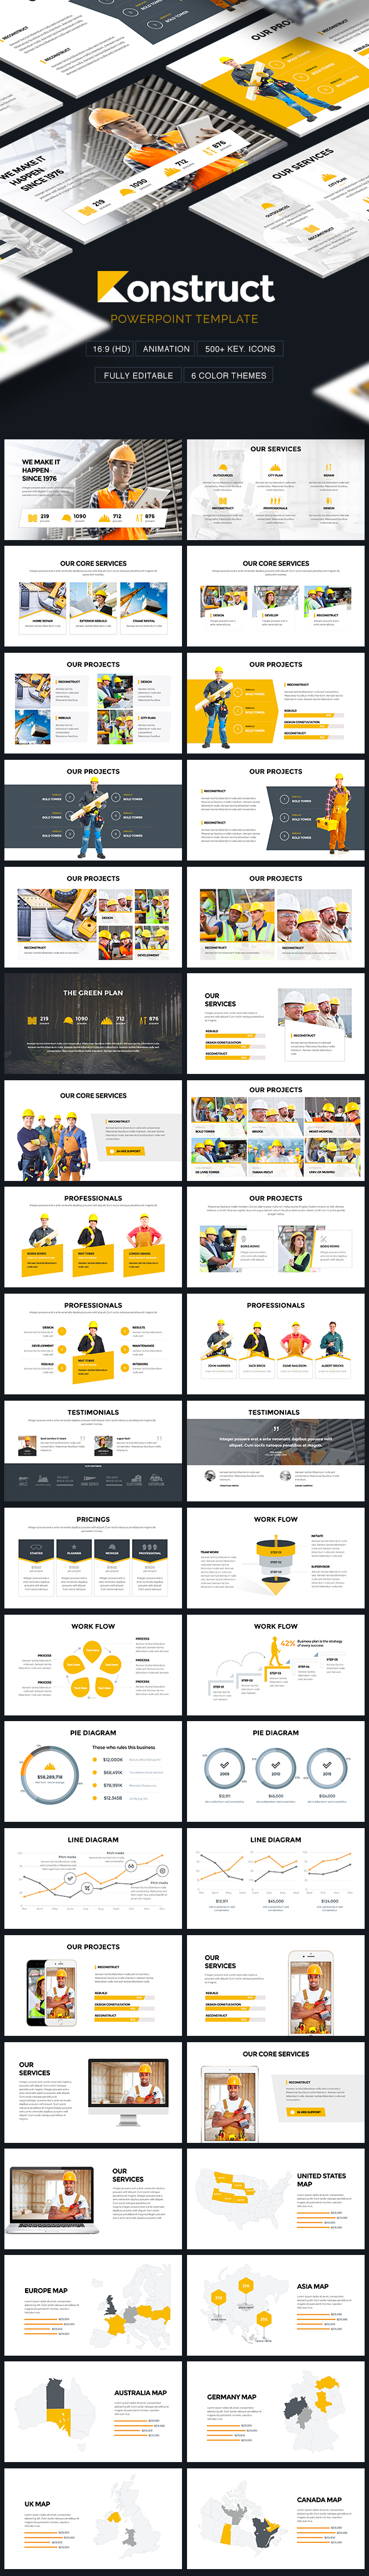 GraphicRiver Konstruct Construction Theme Powerpoint Template 21137163